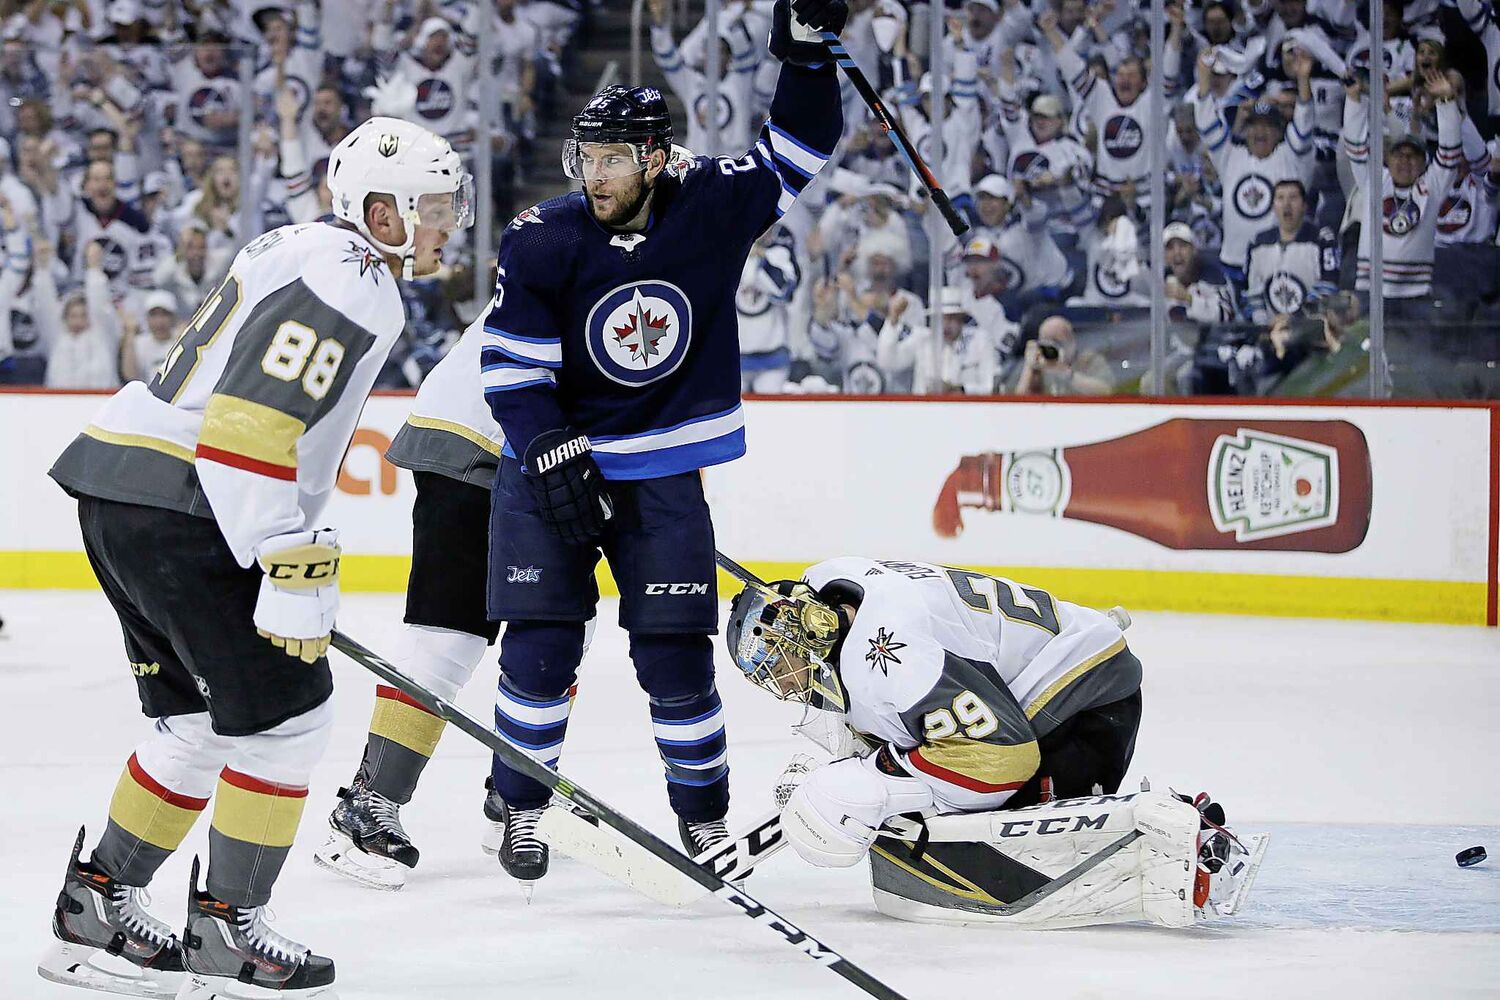 JOHN WOODS / THE CANADIAN PRESS</p><p>Winnipeg Jets' Paul Stastny (25) celebrates Mark Scheifele's (not shown) goal on Vegas Golden Knights goaltender Marc-Andre Fleury (29) as Nate Schmidt (88) defends during second period of game one action in the NHL Western Conference Final in Winnipeg on Saturday, May 12, 2018.</p>